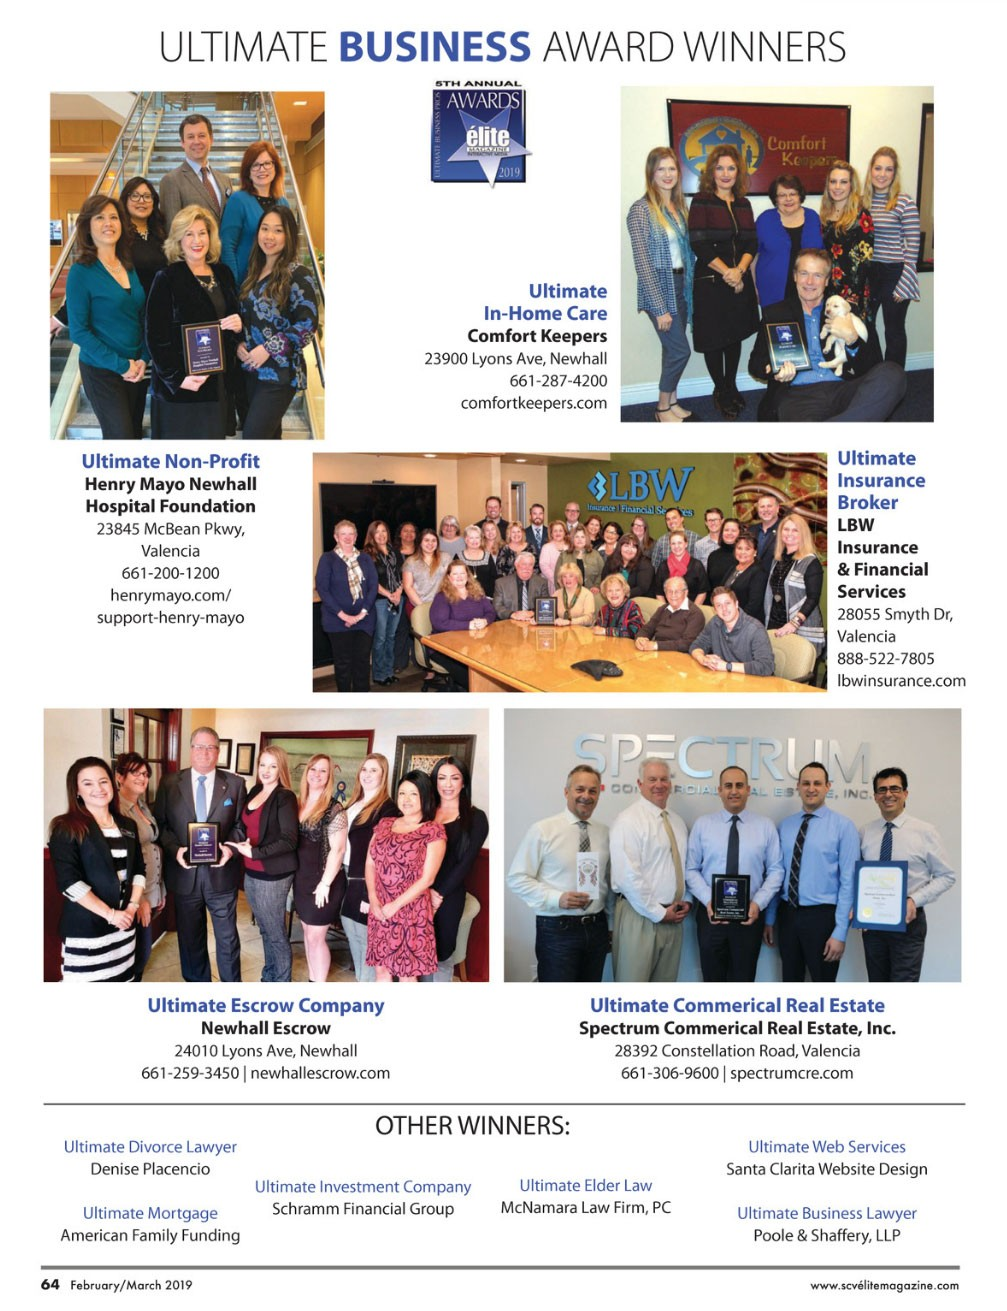 Ultimate Business Award Winners 2019